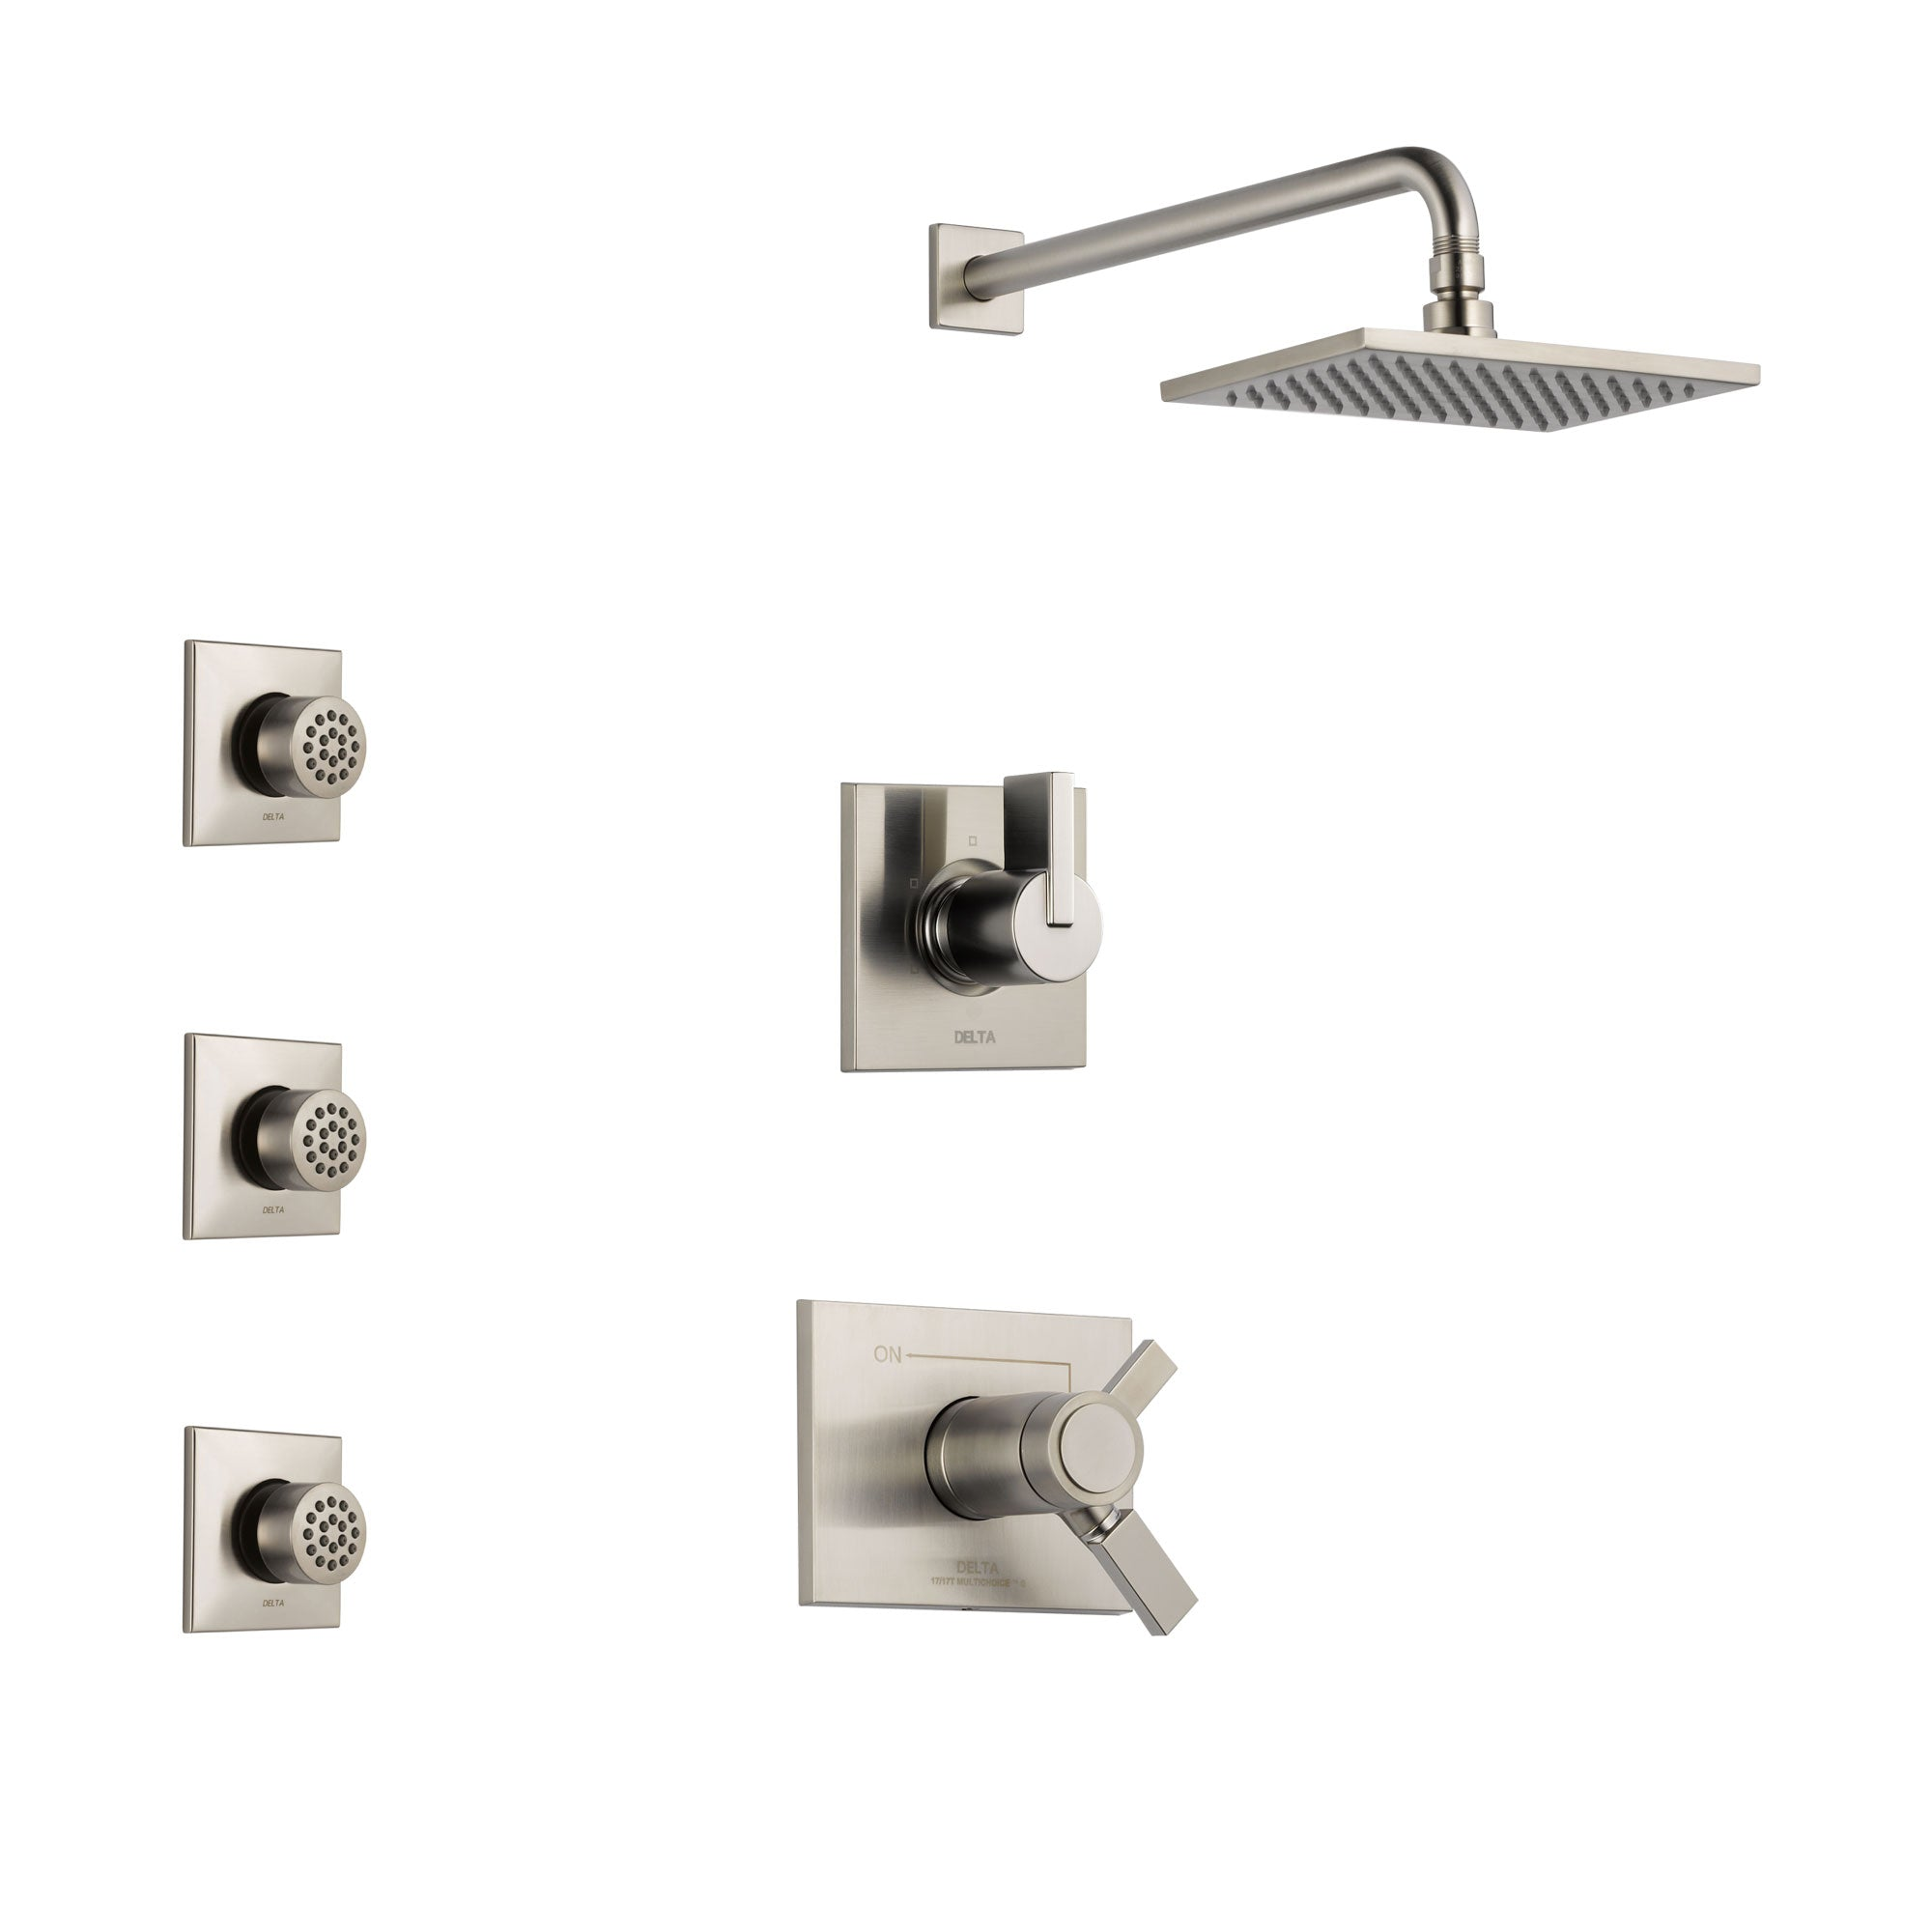 Delta Vero Stainless Steel Finish Shower System with Dual Thermostatic Control Handle, 3-Setting Diverter, Showerhead, and 3 Body Sprays SS17T2531SS1